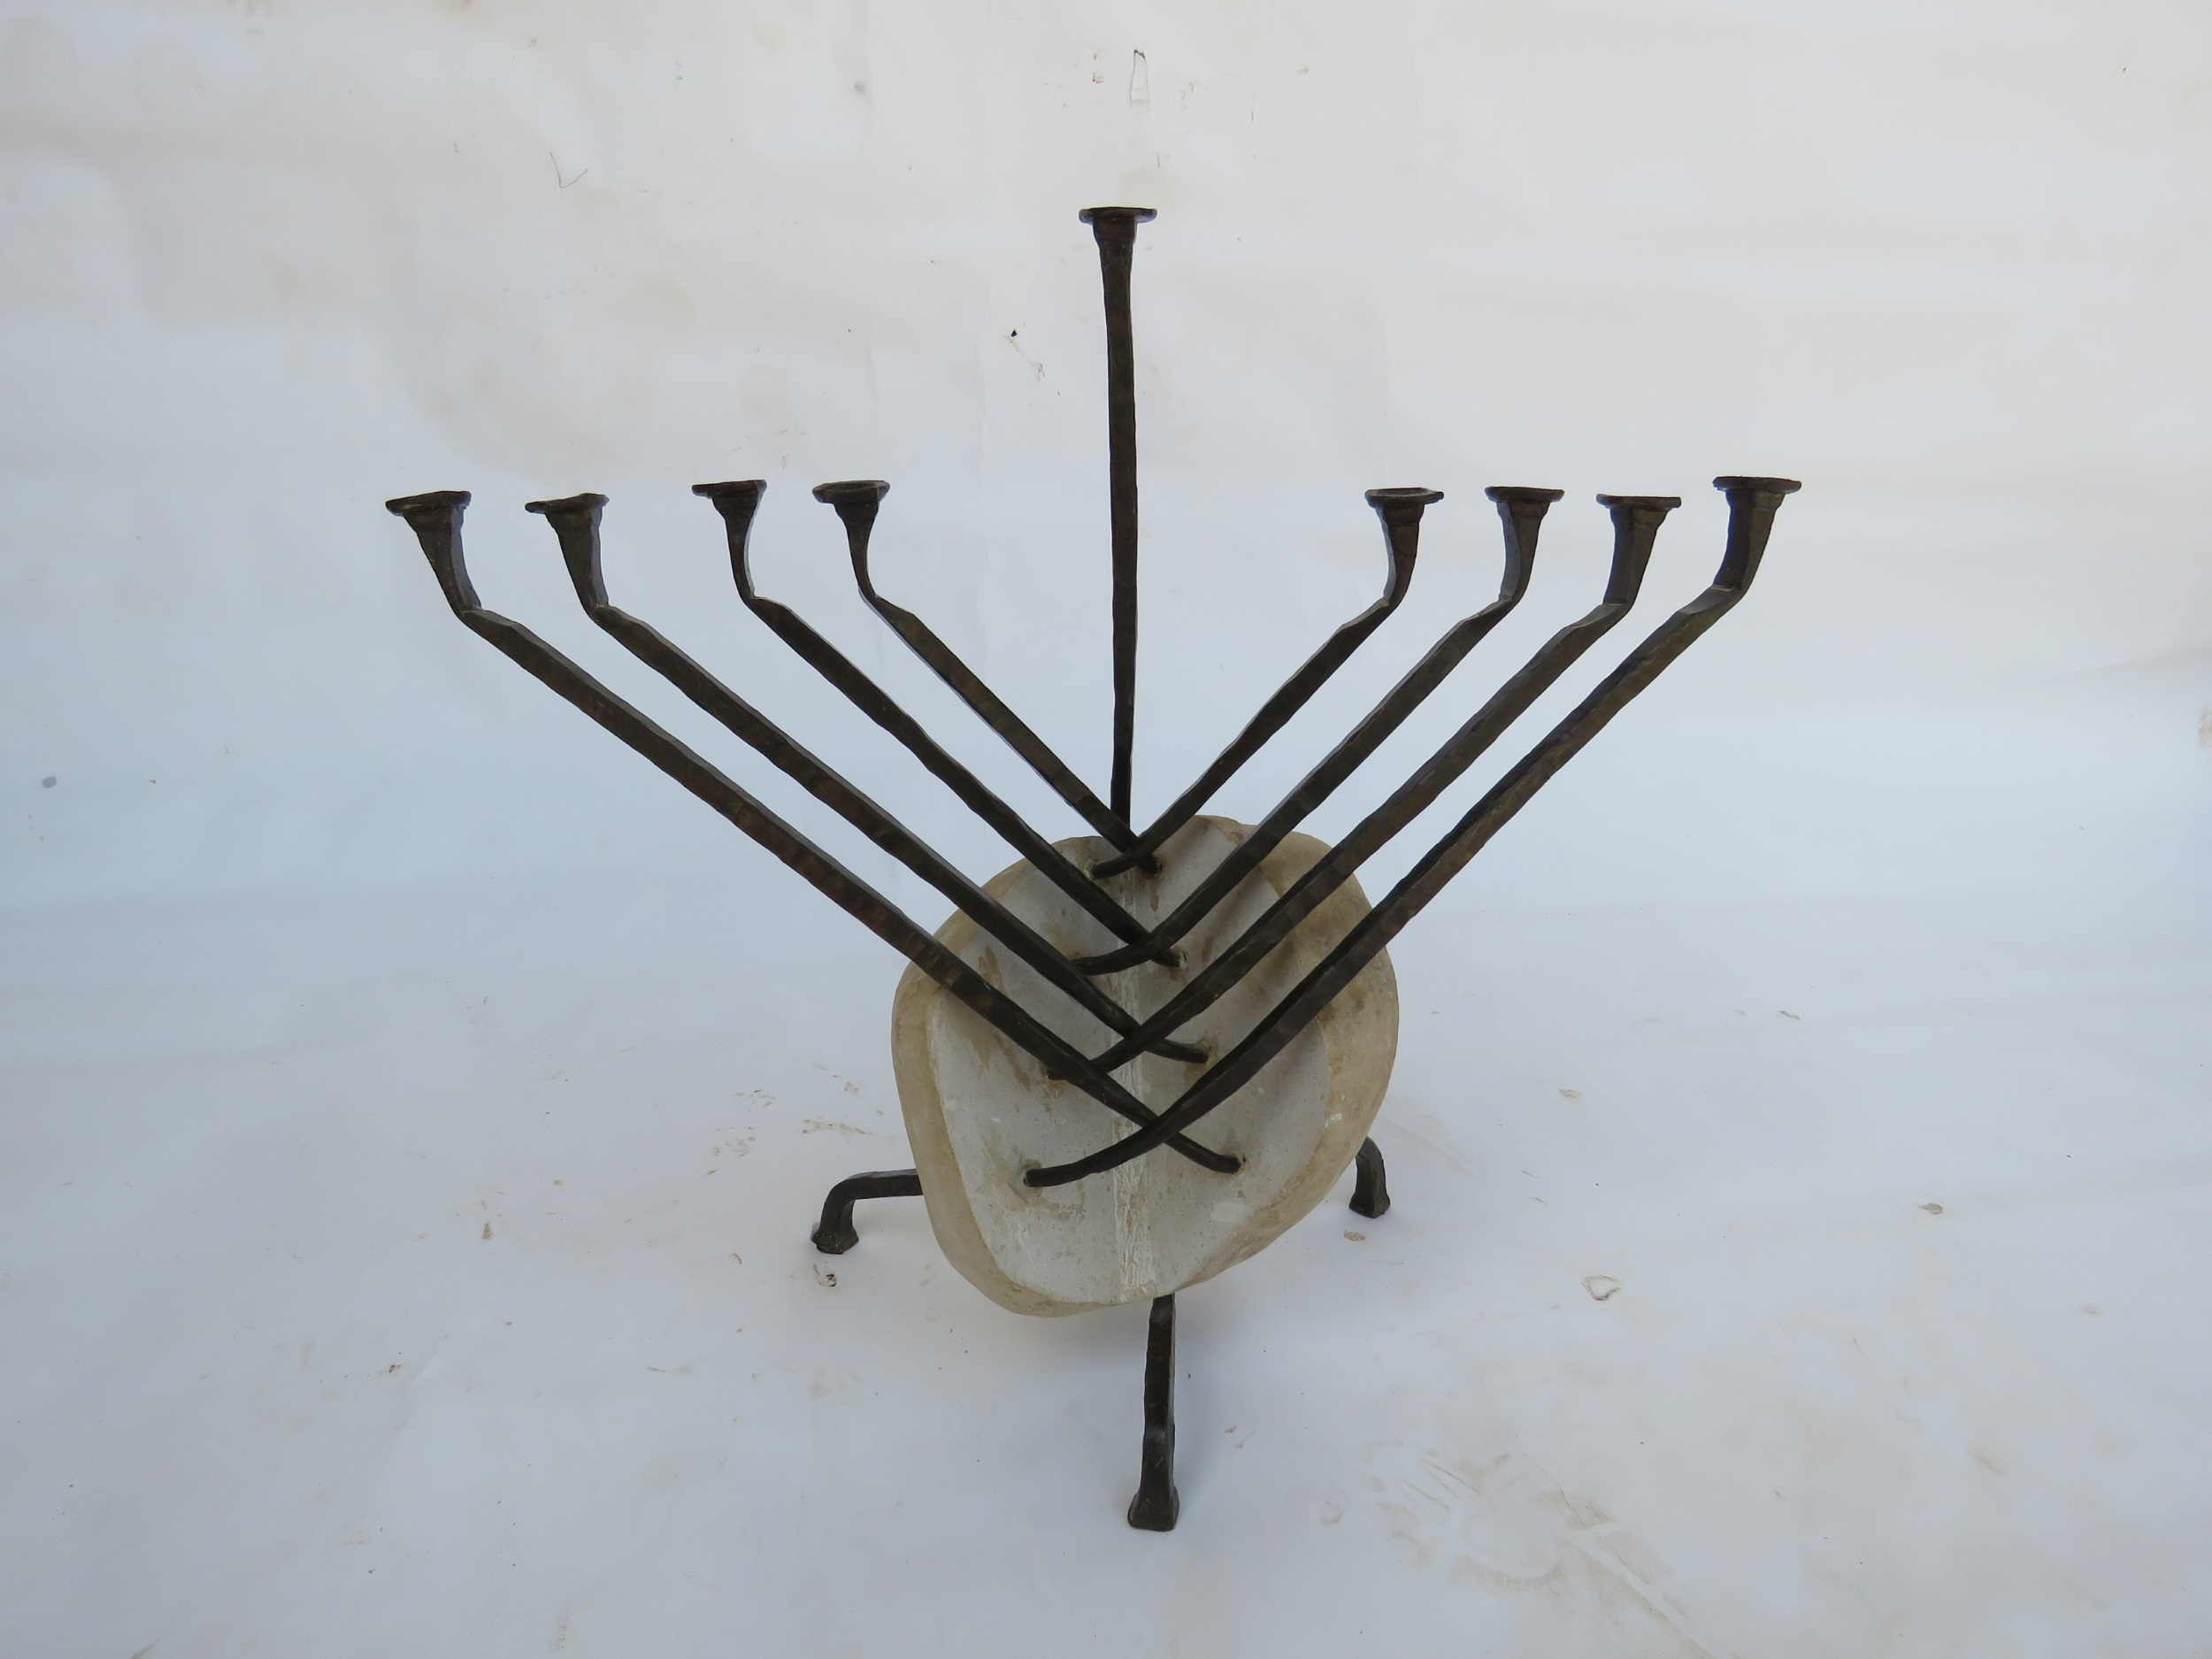 'Chabad' - Hannukah Menorah of Stone & Iron, crafted in the Chabad Tradition